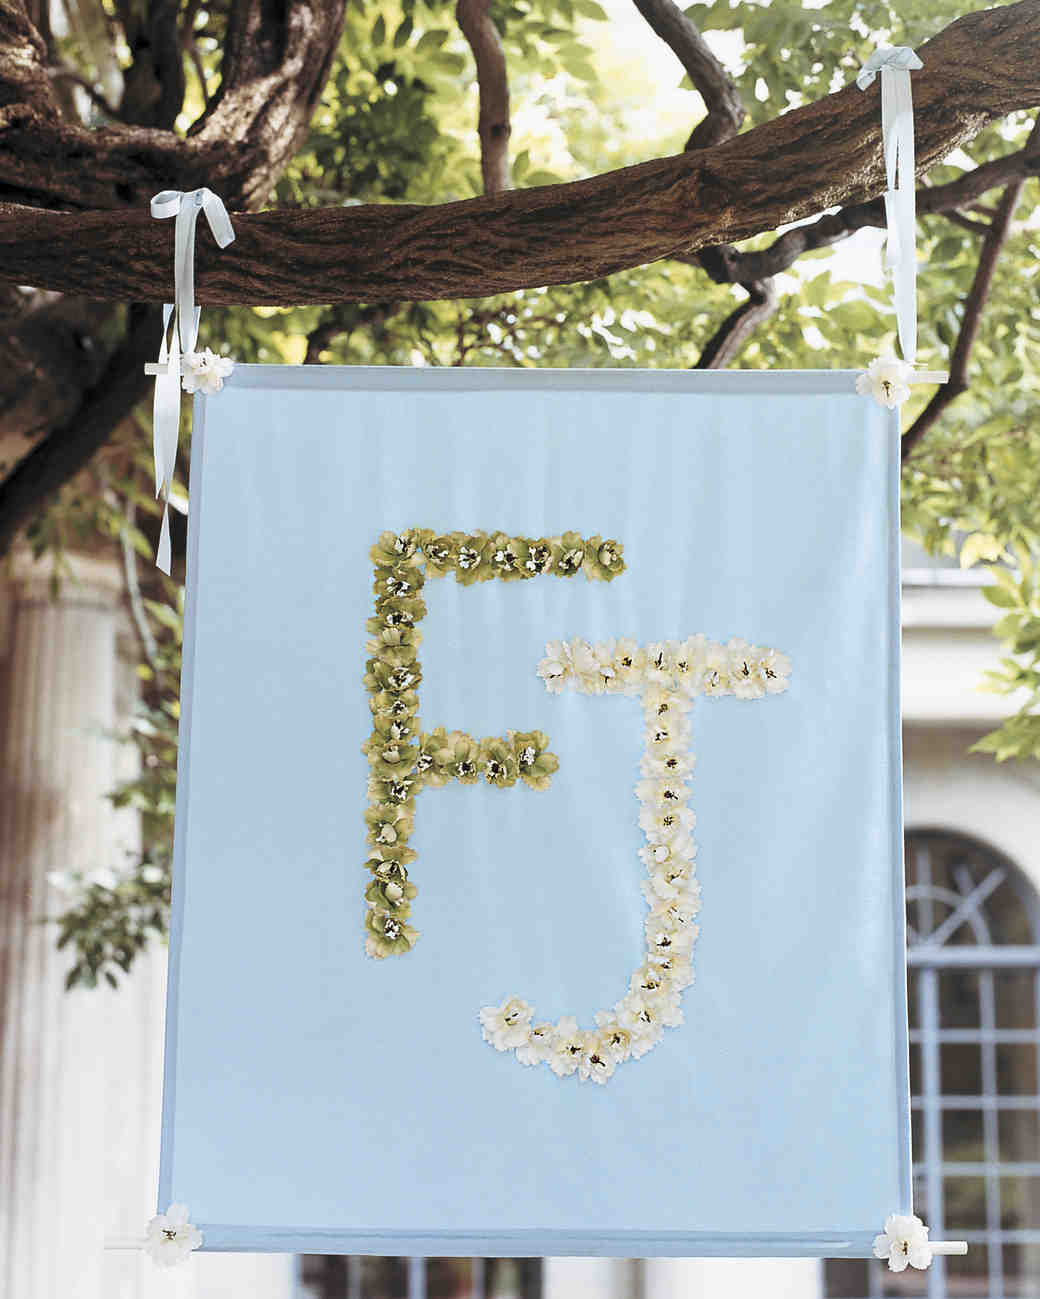 Diy Backyard Wedding Ideas: Outdoor Wedding Decorations That Are Easy To DIY